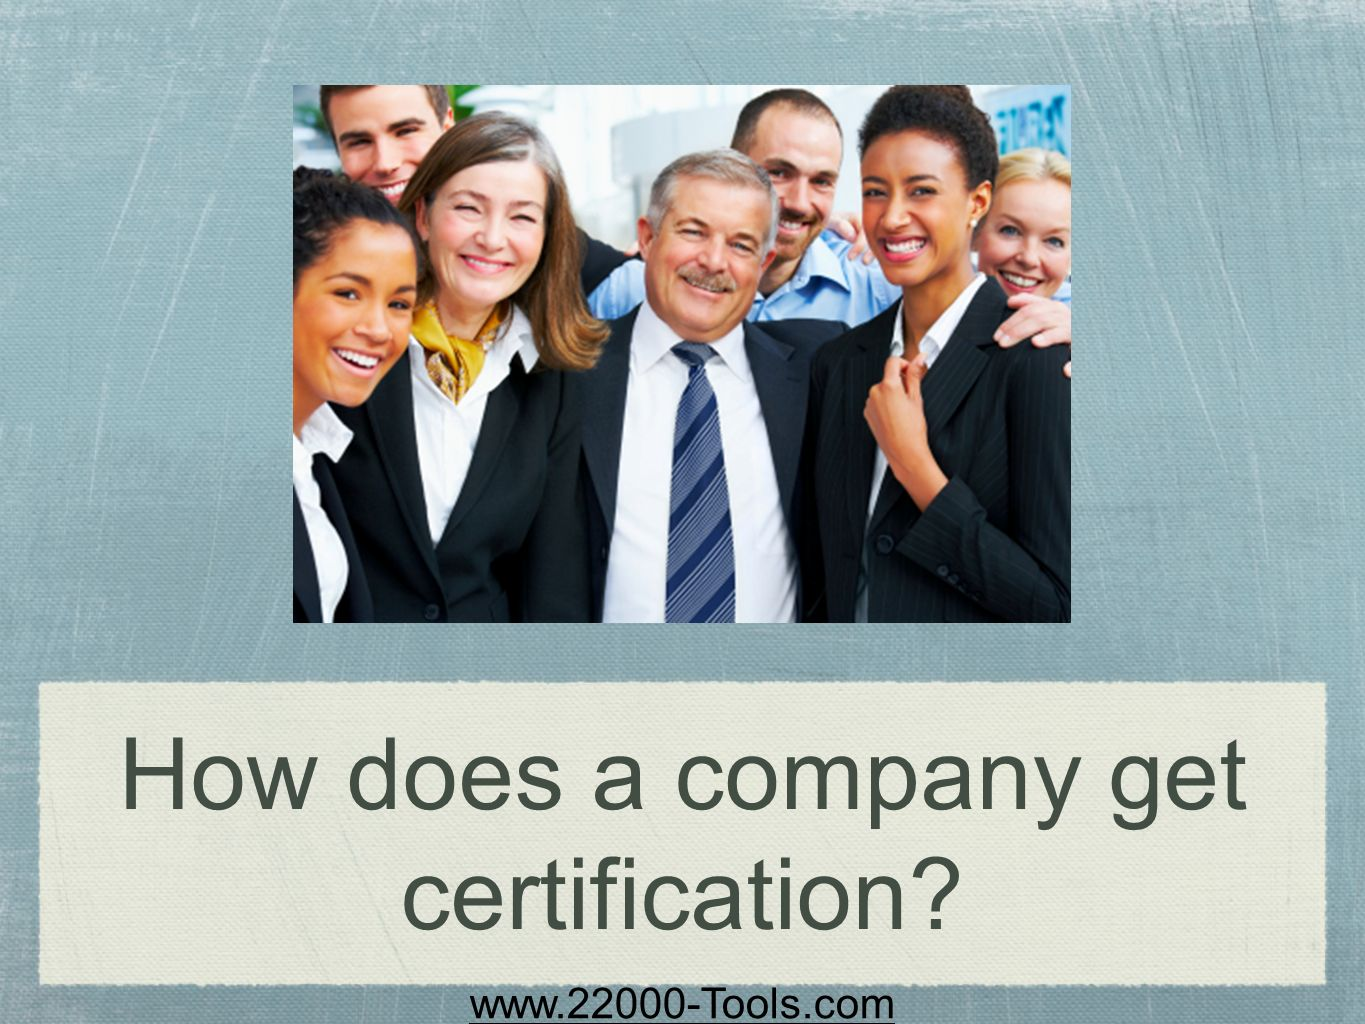 How does a company get certification